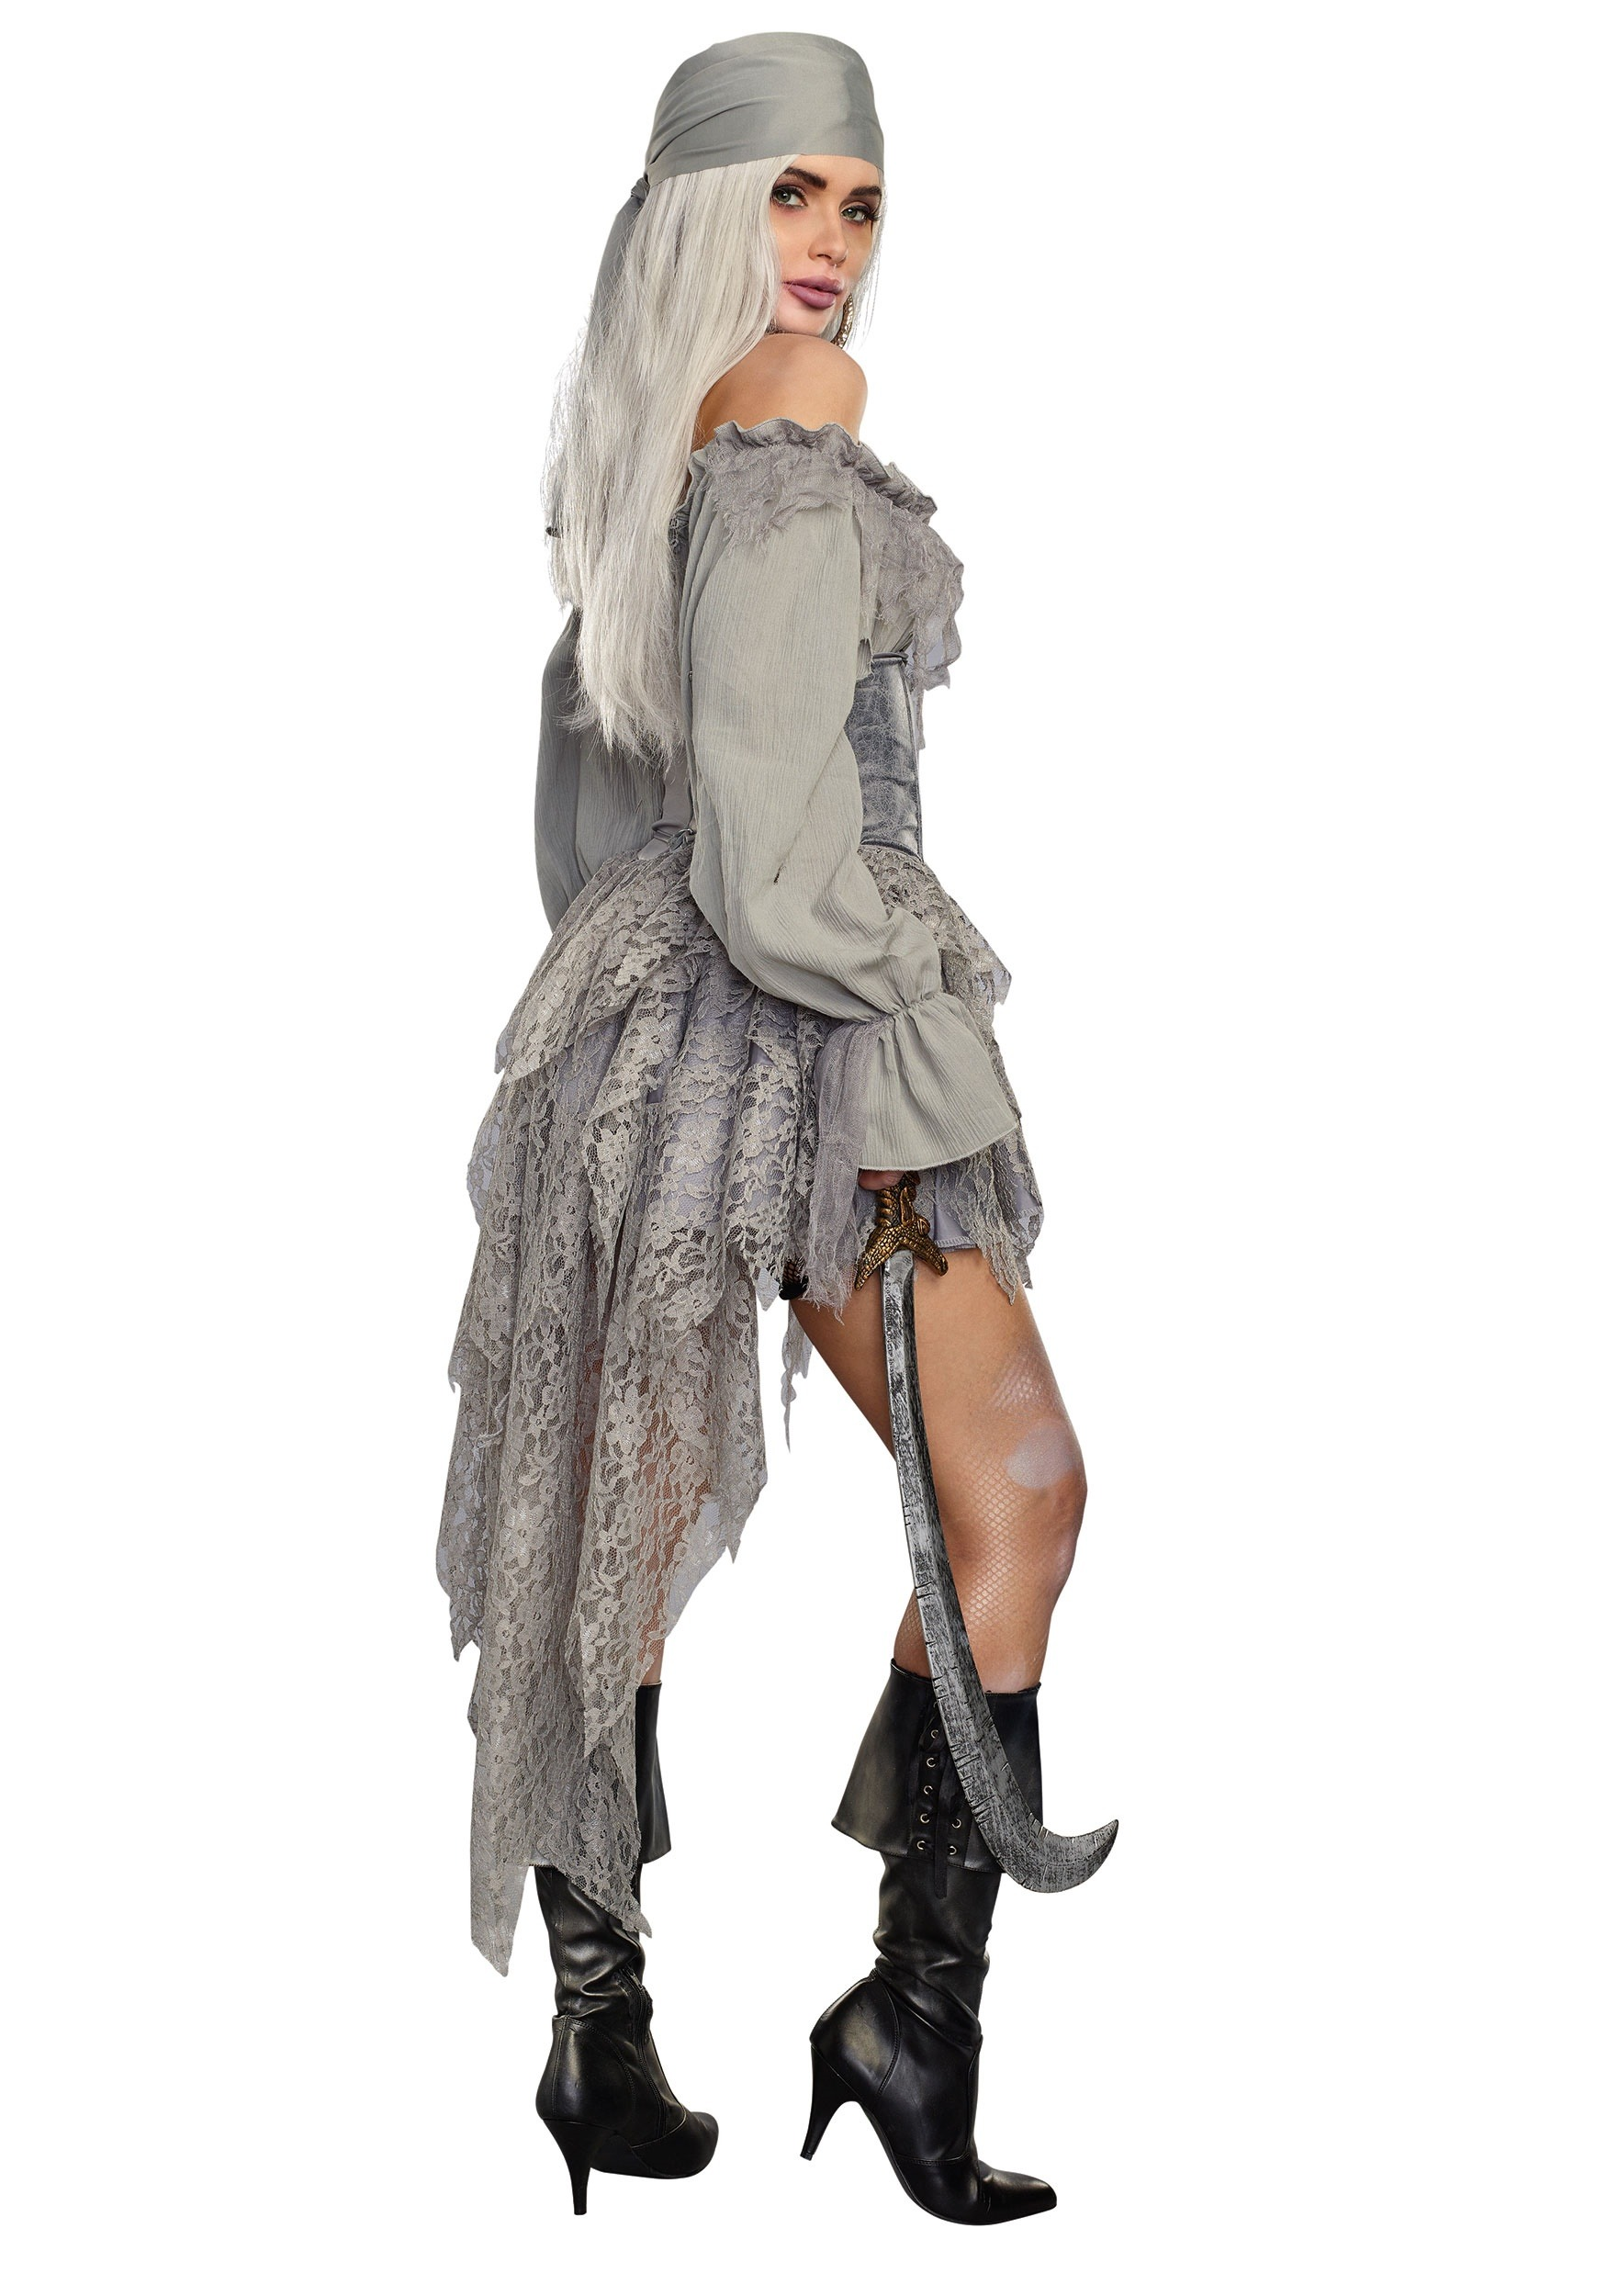 Womenu0027s Ghost Pirate Costume Womenu0027s Ghost Pirate Costume2  sc 1 st  Halloween Costumes & Ghost Pirate Costume for Women